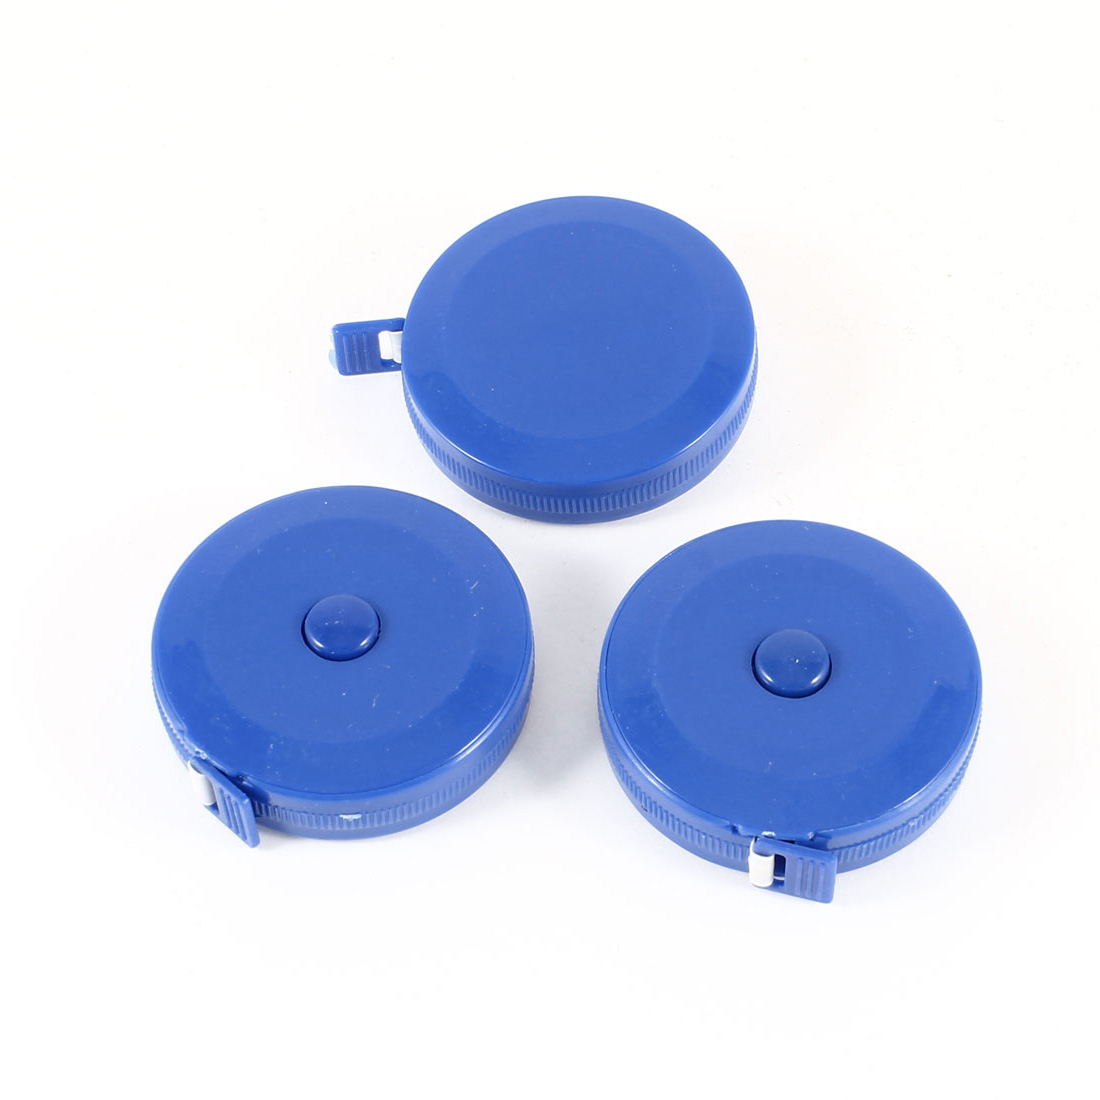 3 Pcs Blue Round Case Retractable Sewing Tape Measure 150cm 60""